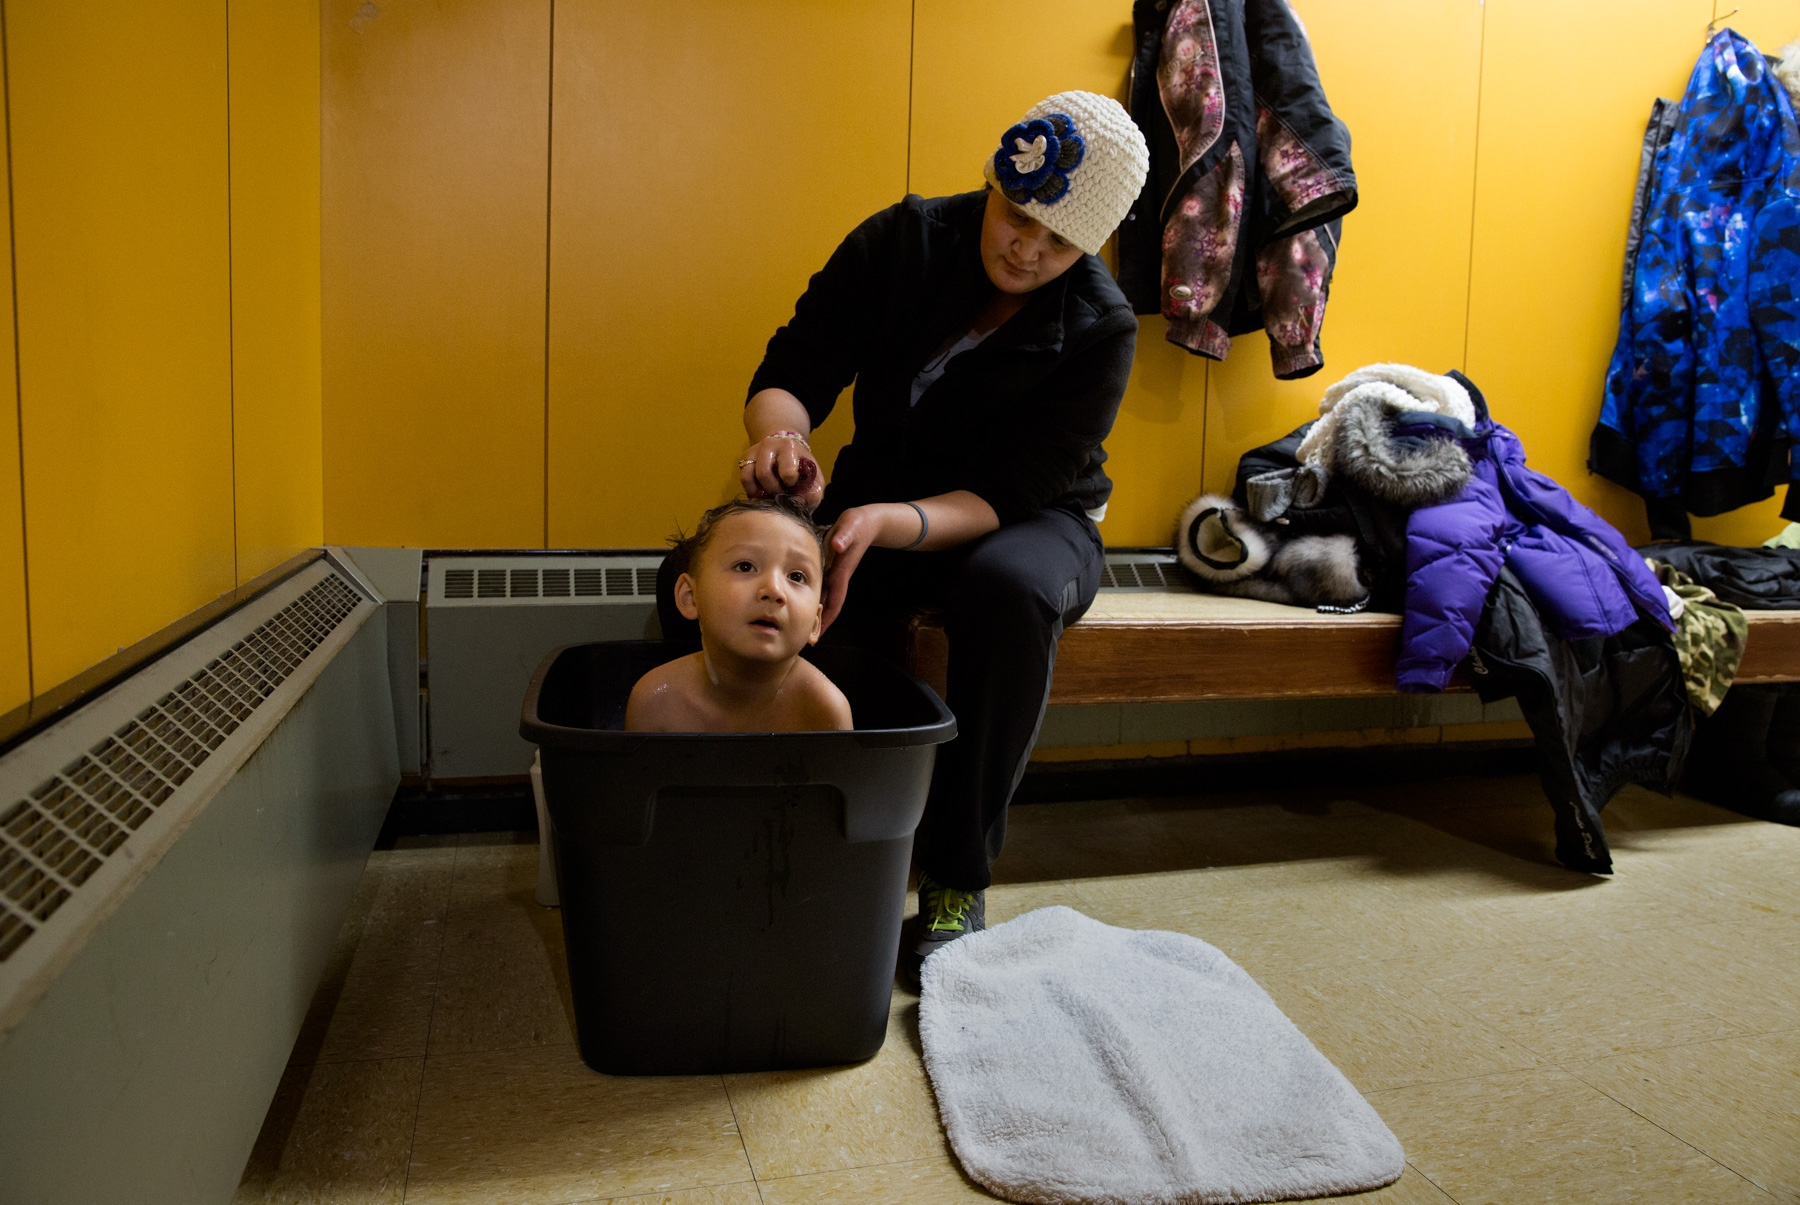 Nora Iyatunguk washes her son, Gilford, in the women's section of the Washeteria in Shishmaref, Alaska. A bucket of hot water for this purpose is $2.00. The Washeteria is the only place for residents to take showers and/or wash their clothes. Elders get their laundry done for free and get free use of the showers.